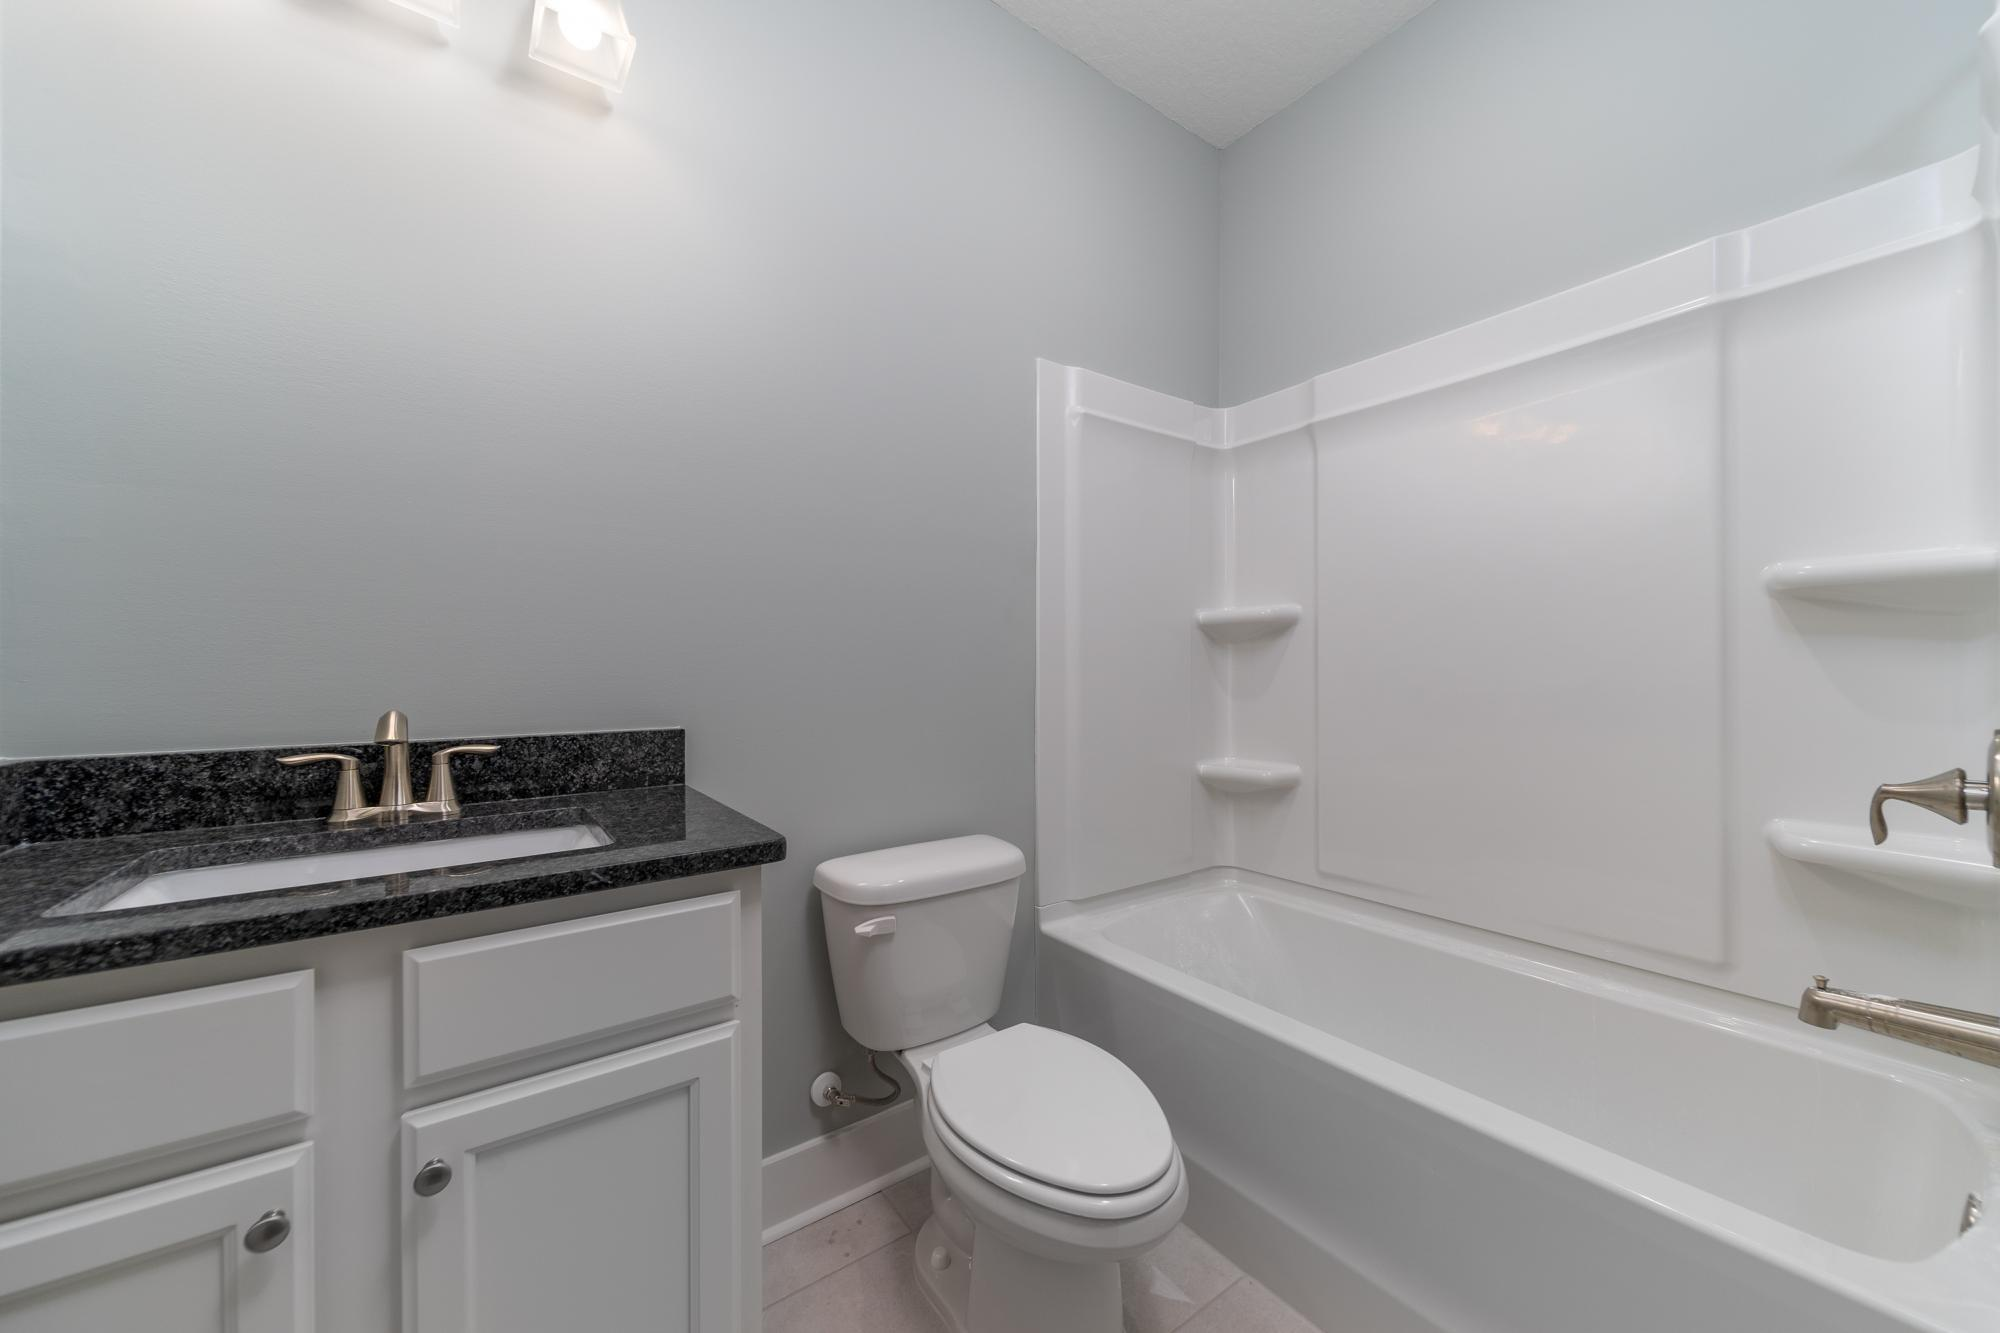 Bathroom featured in the Crevalle By Samuel Taylor Homes in Panama City, FL